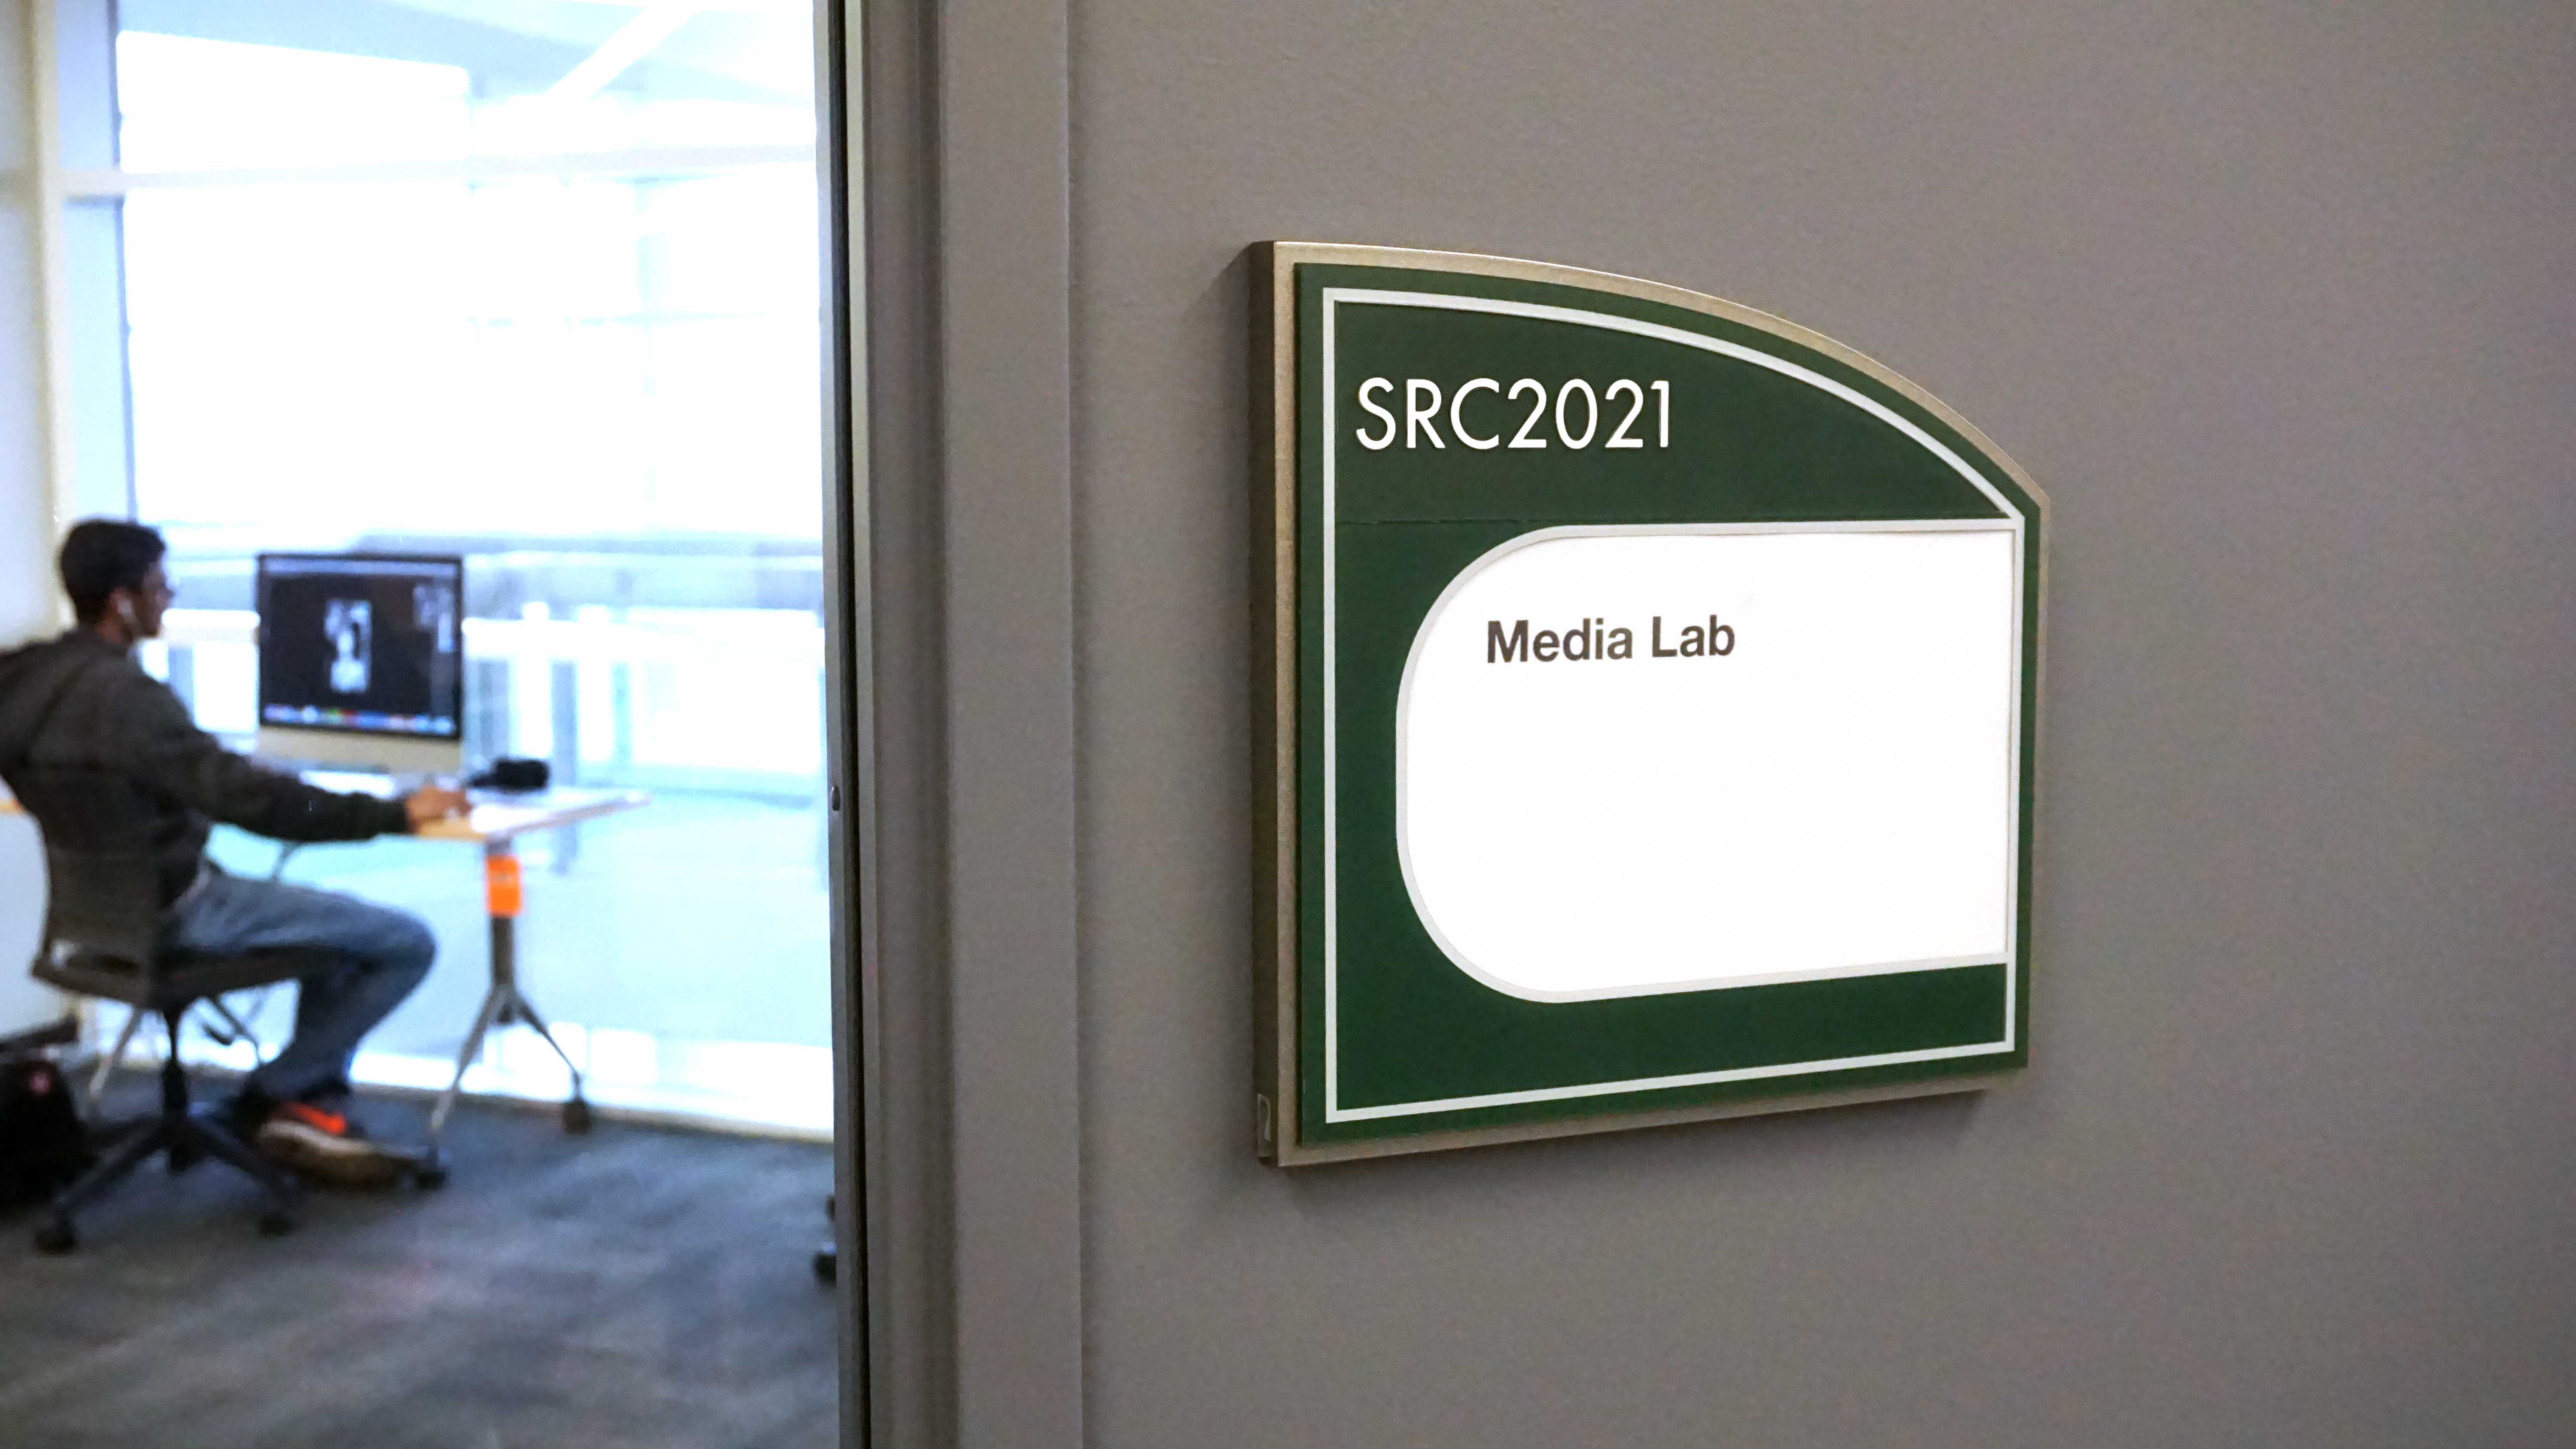 The Media Lab, located at College of DuPage's library on March 19.